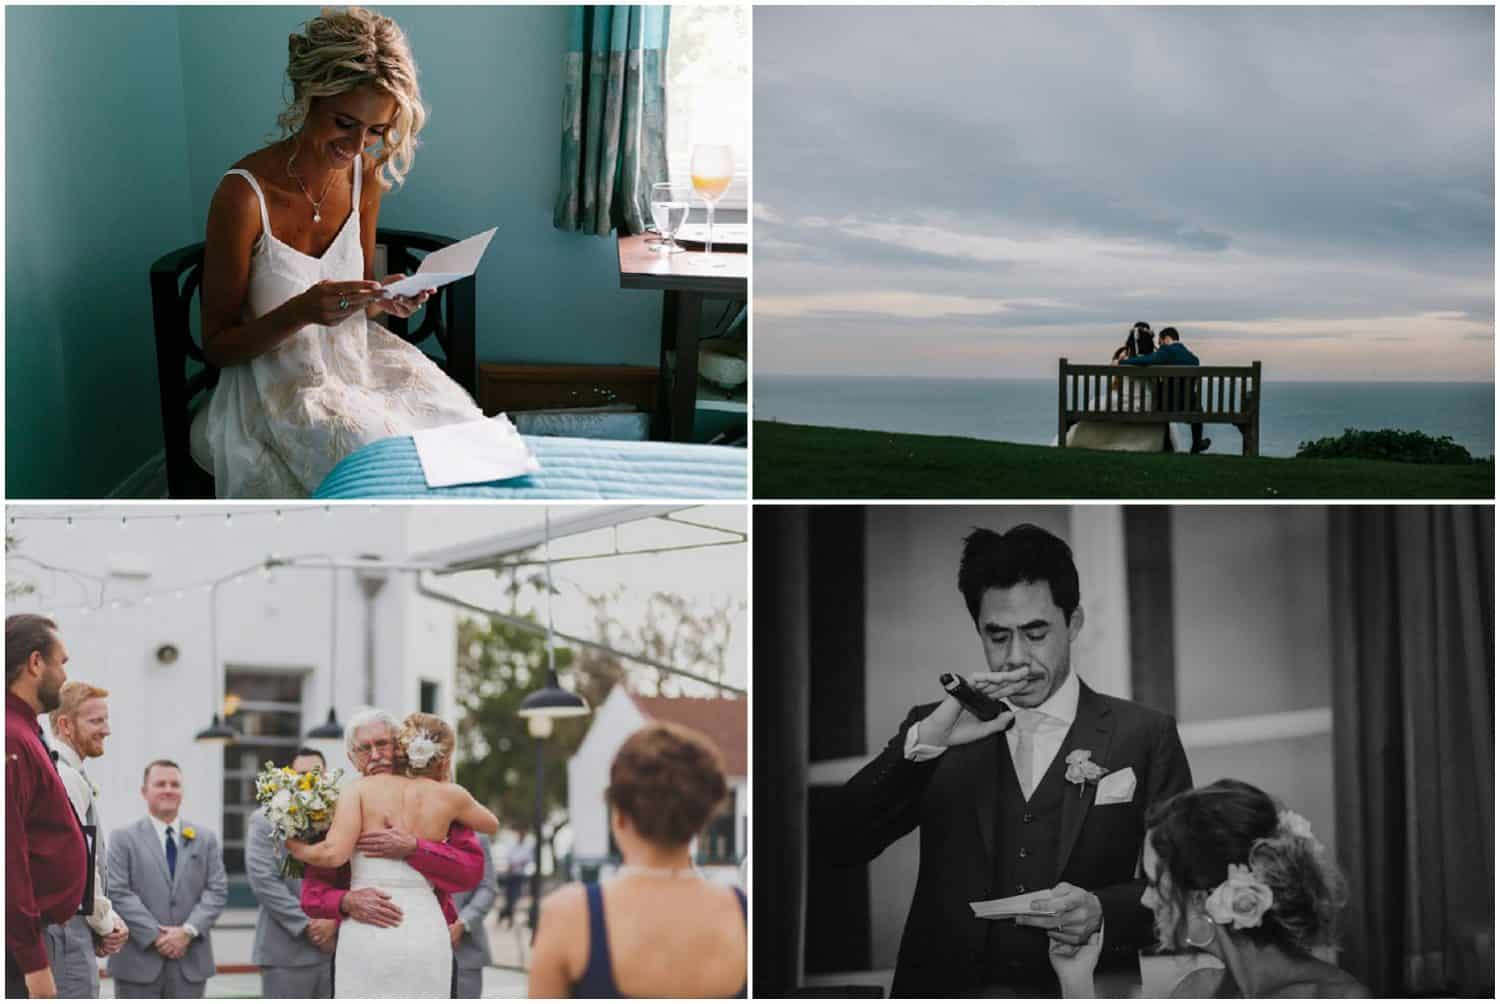 Wedding inspiration - stolen moments, first looks